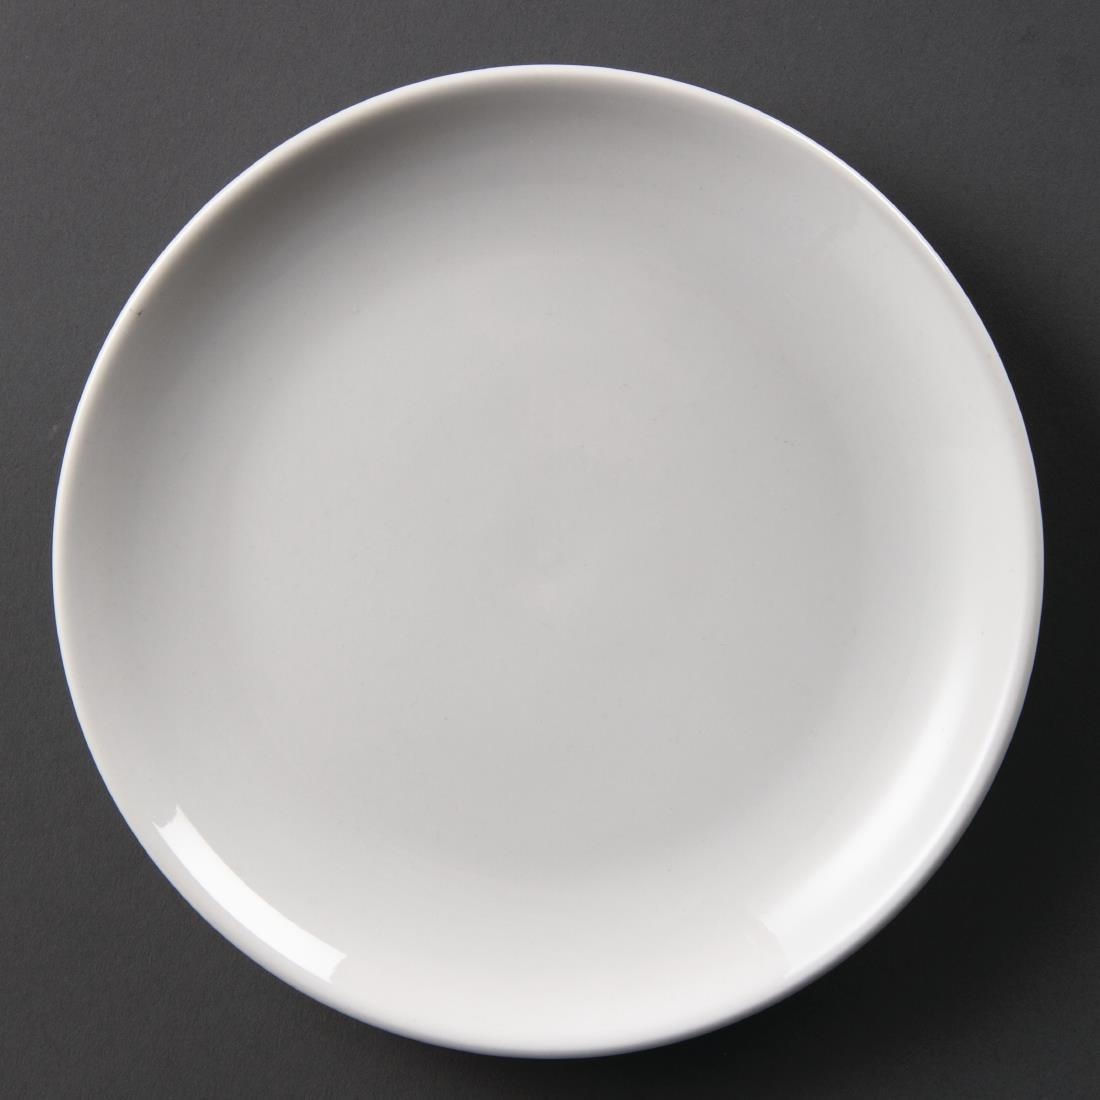 Olympia Whiteware Coupe Plates 200mm